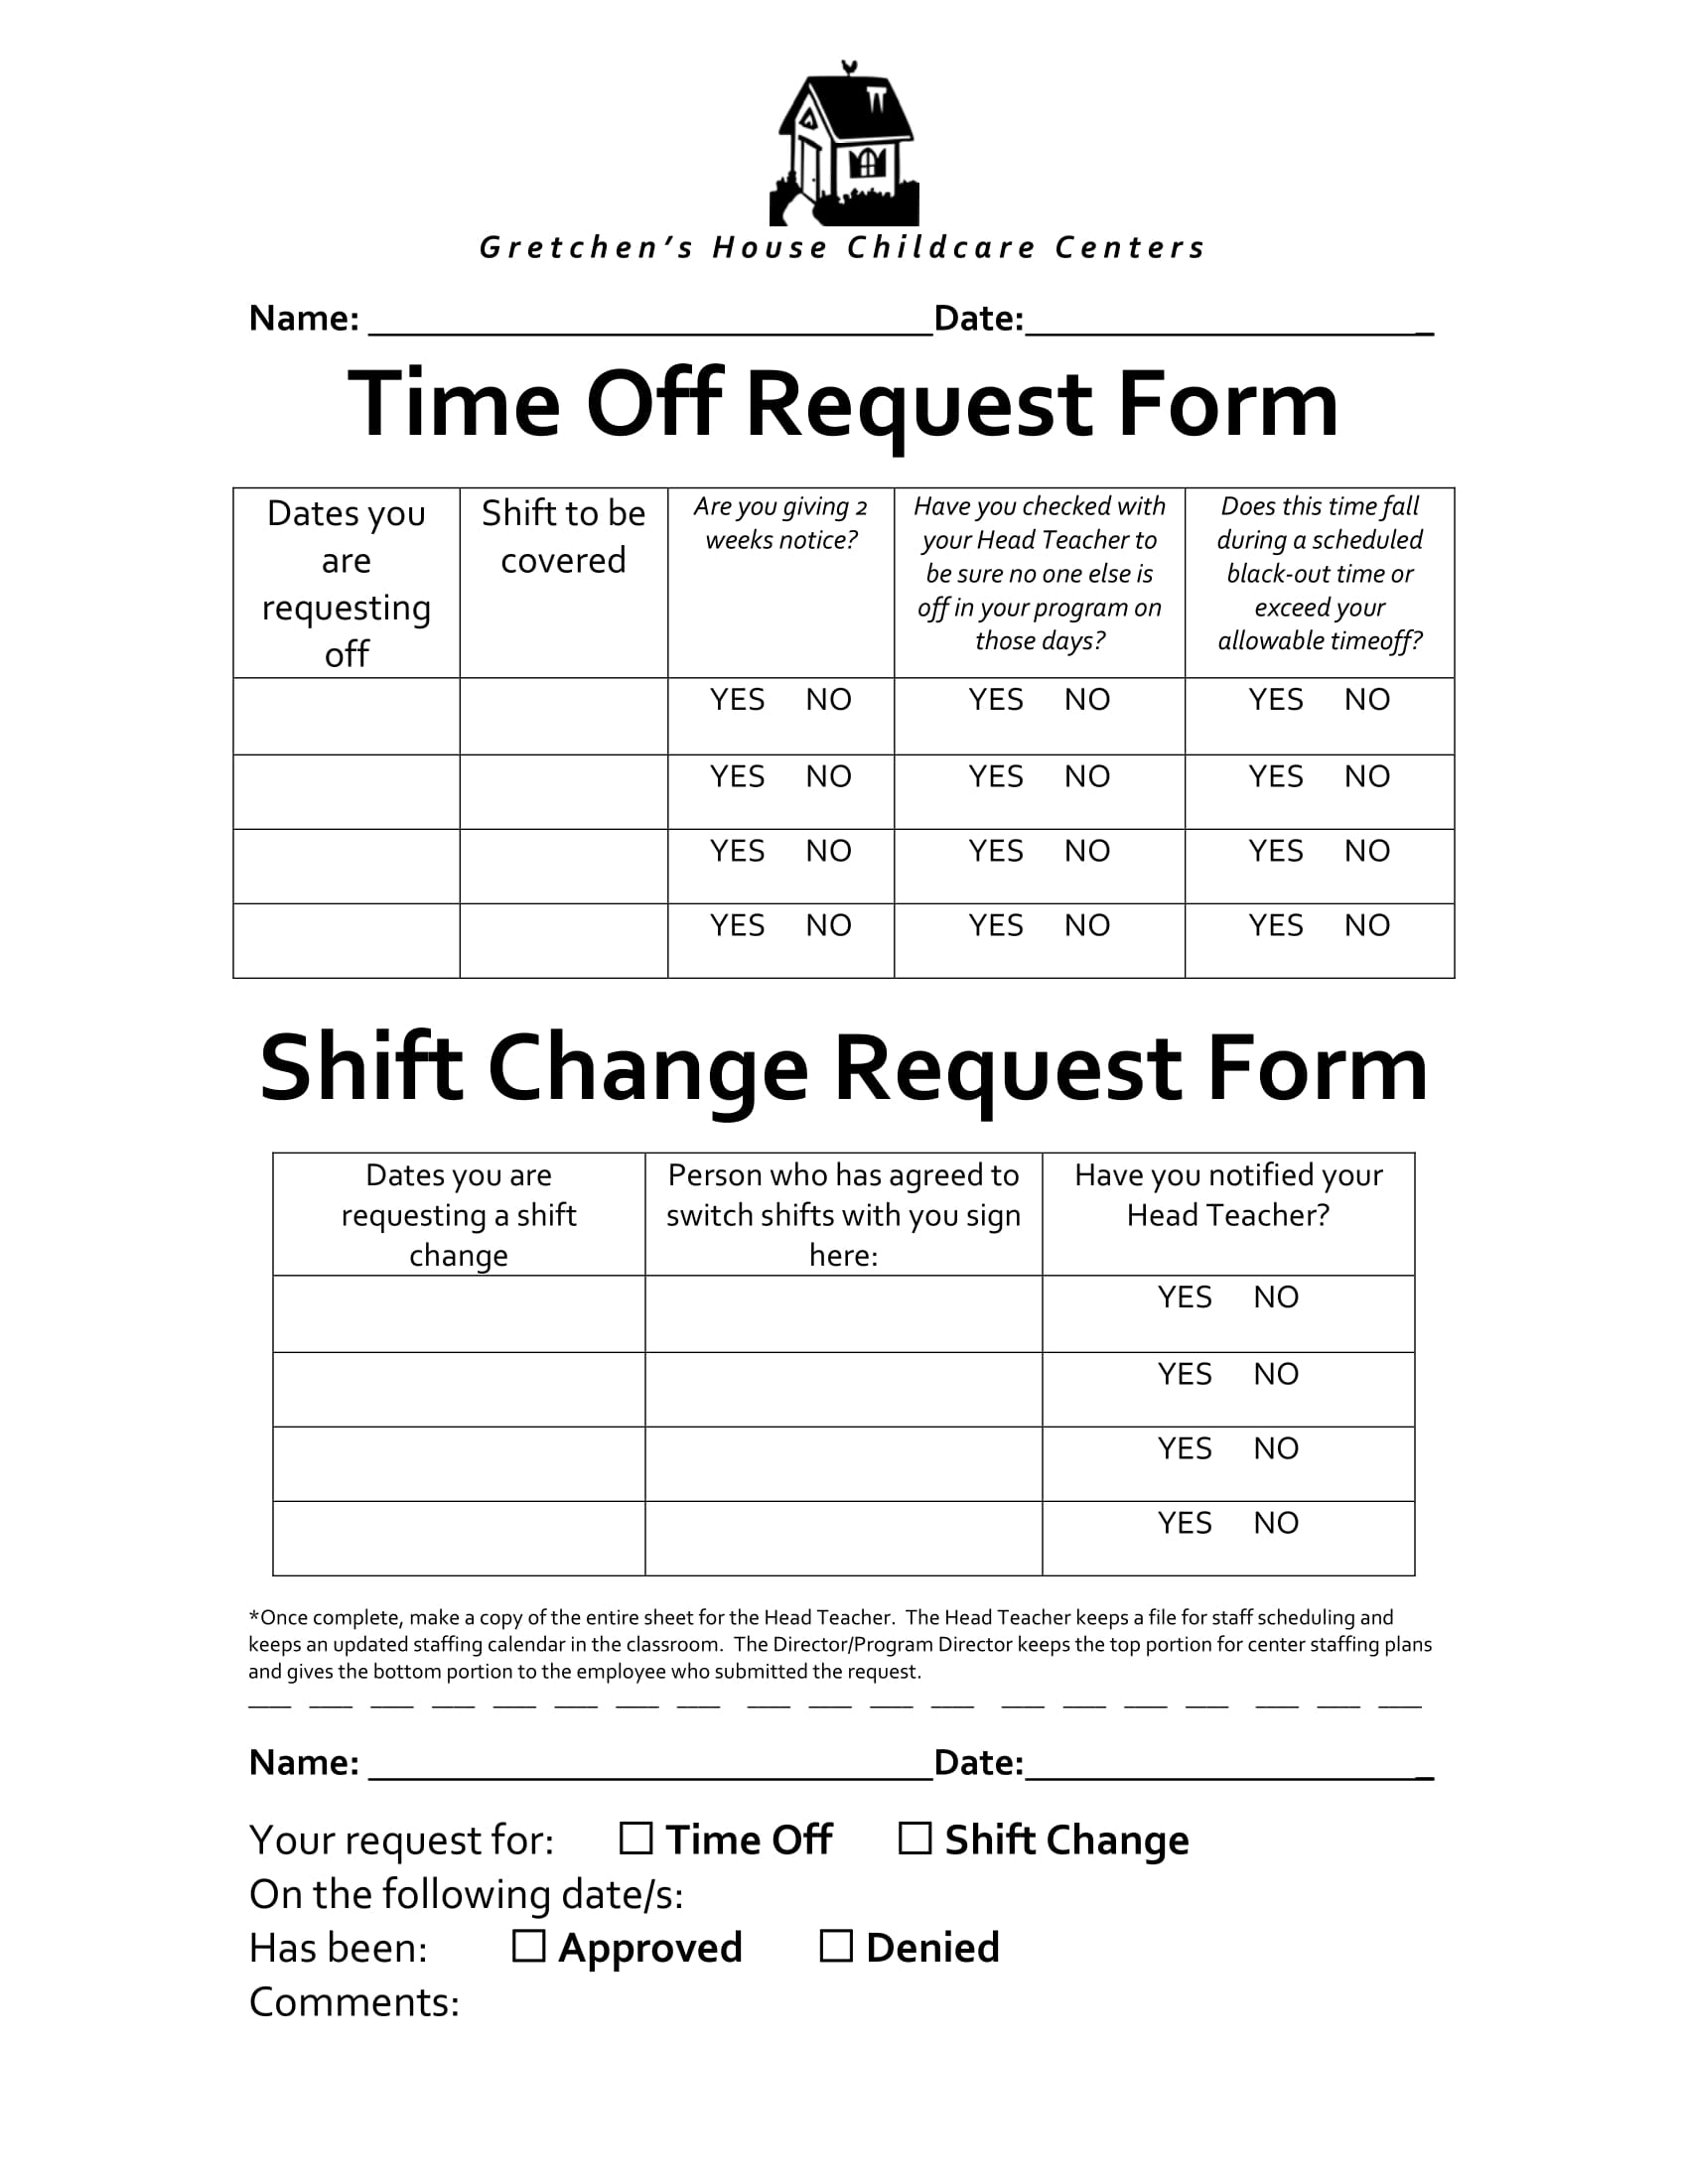 time off and shift change request form 1